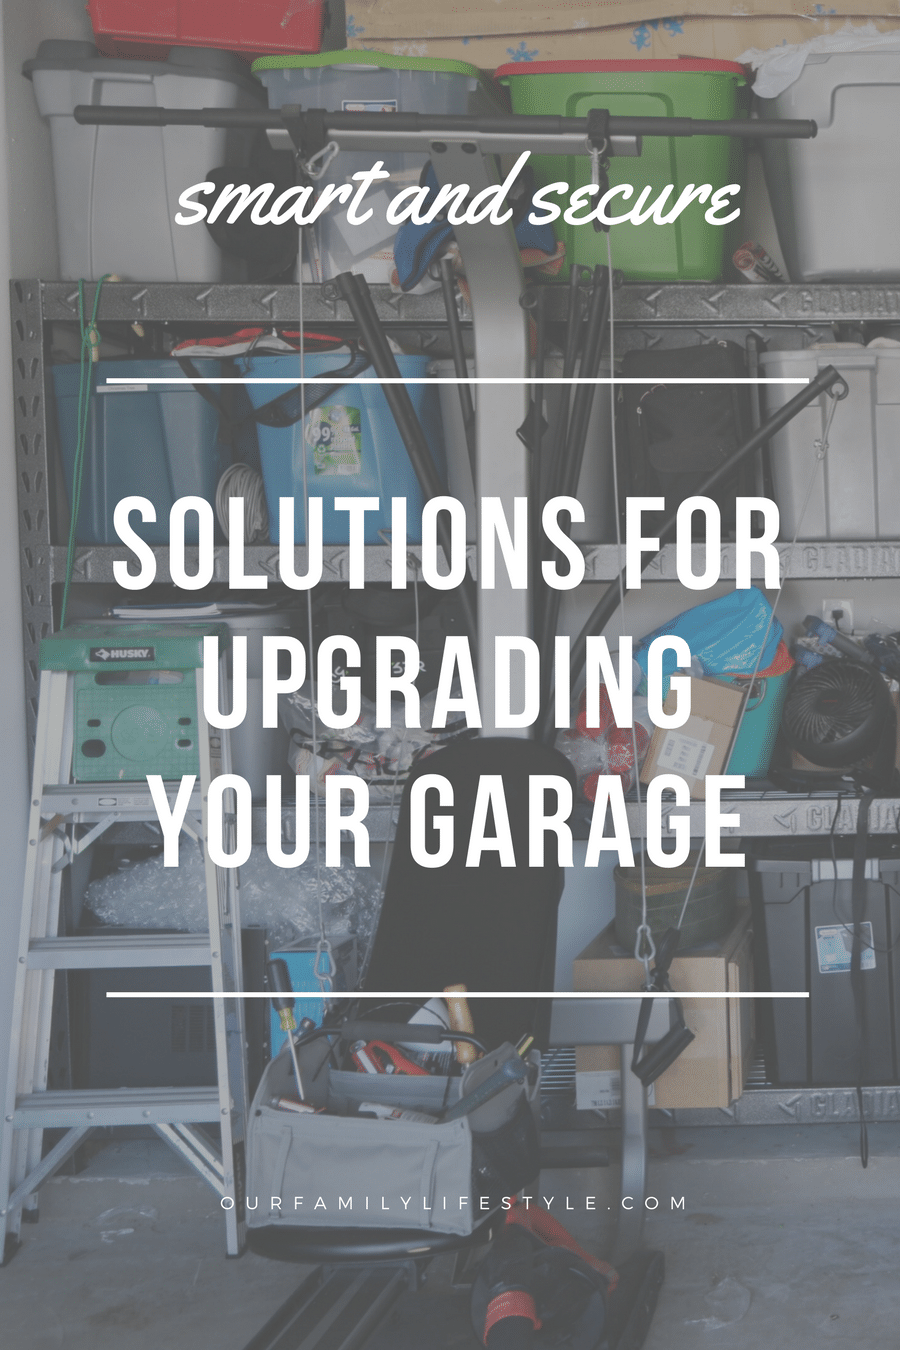 Smart and Secure Solutions for Upgrading Your Garage